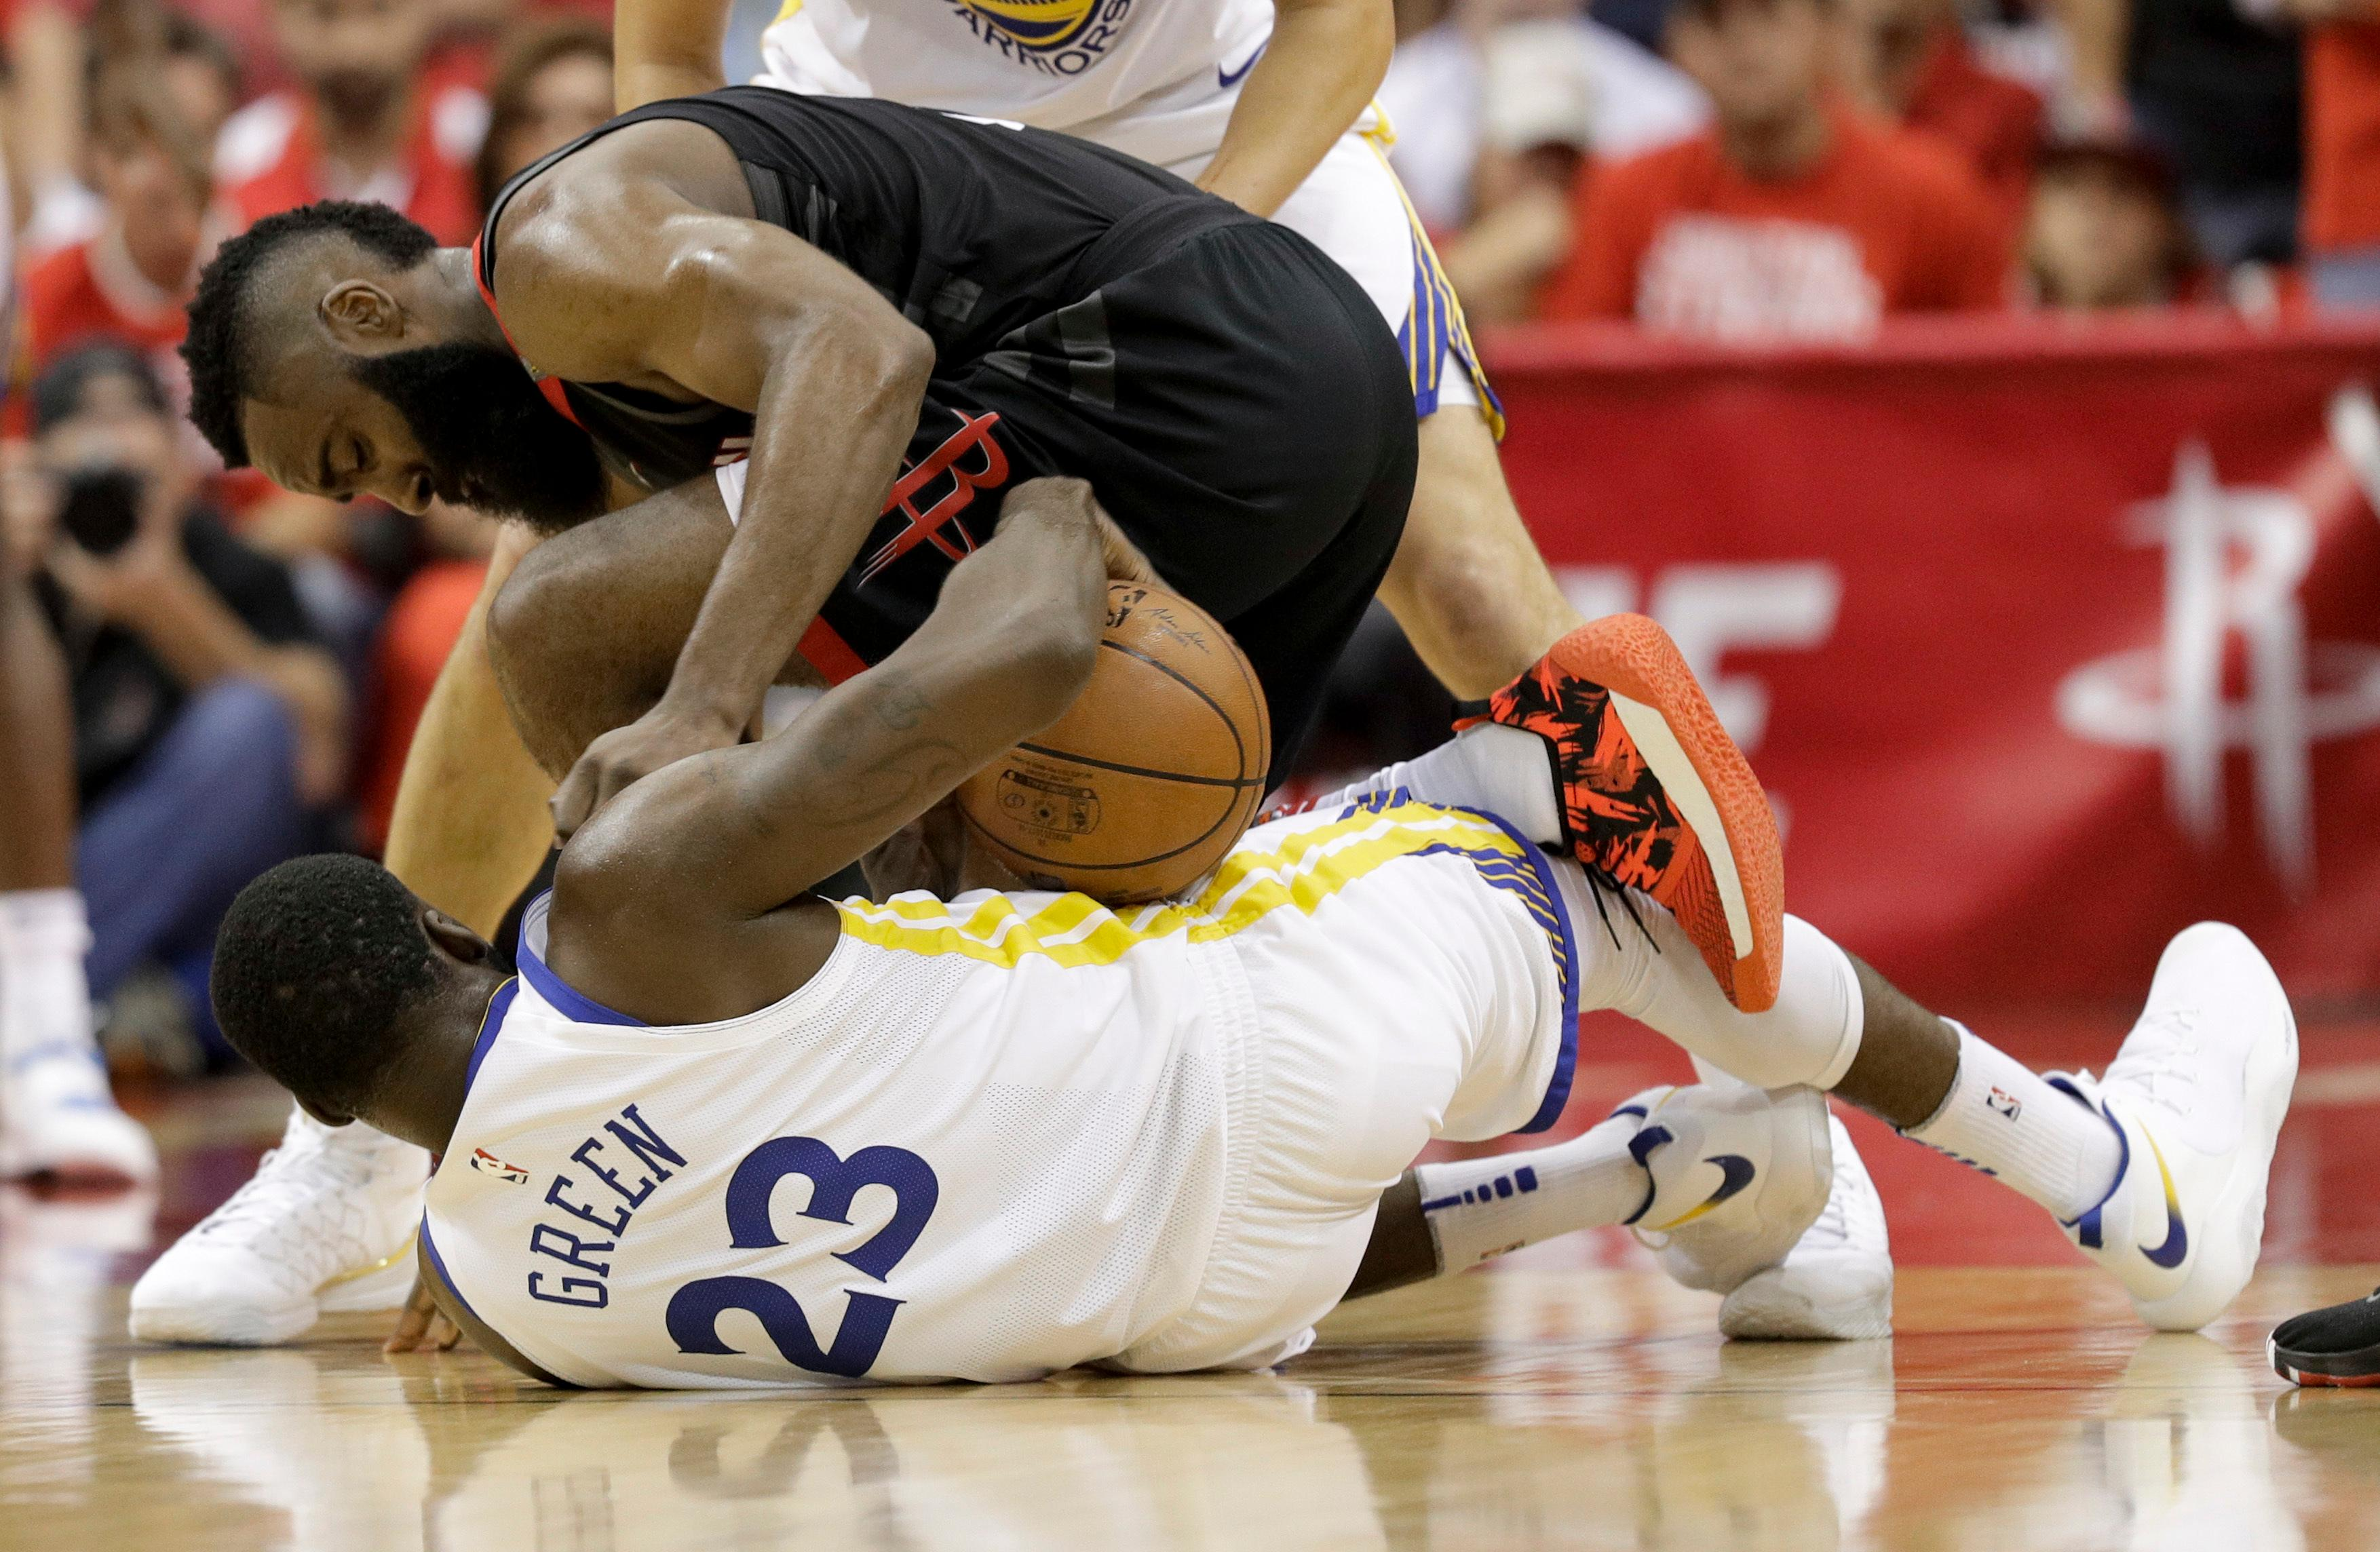 Houston Rockets guard James Harden, top, battles Golden State Warriors forward Draymond Green for a loose ball during the first half in Game 5 of the NBA basketball playoffsWestern Conference finals in Houston, Thursday, May 24, 2018. (AP Photo/David J. Phillip)